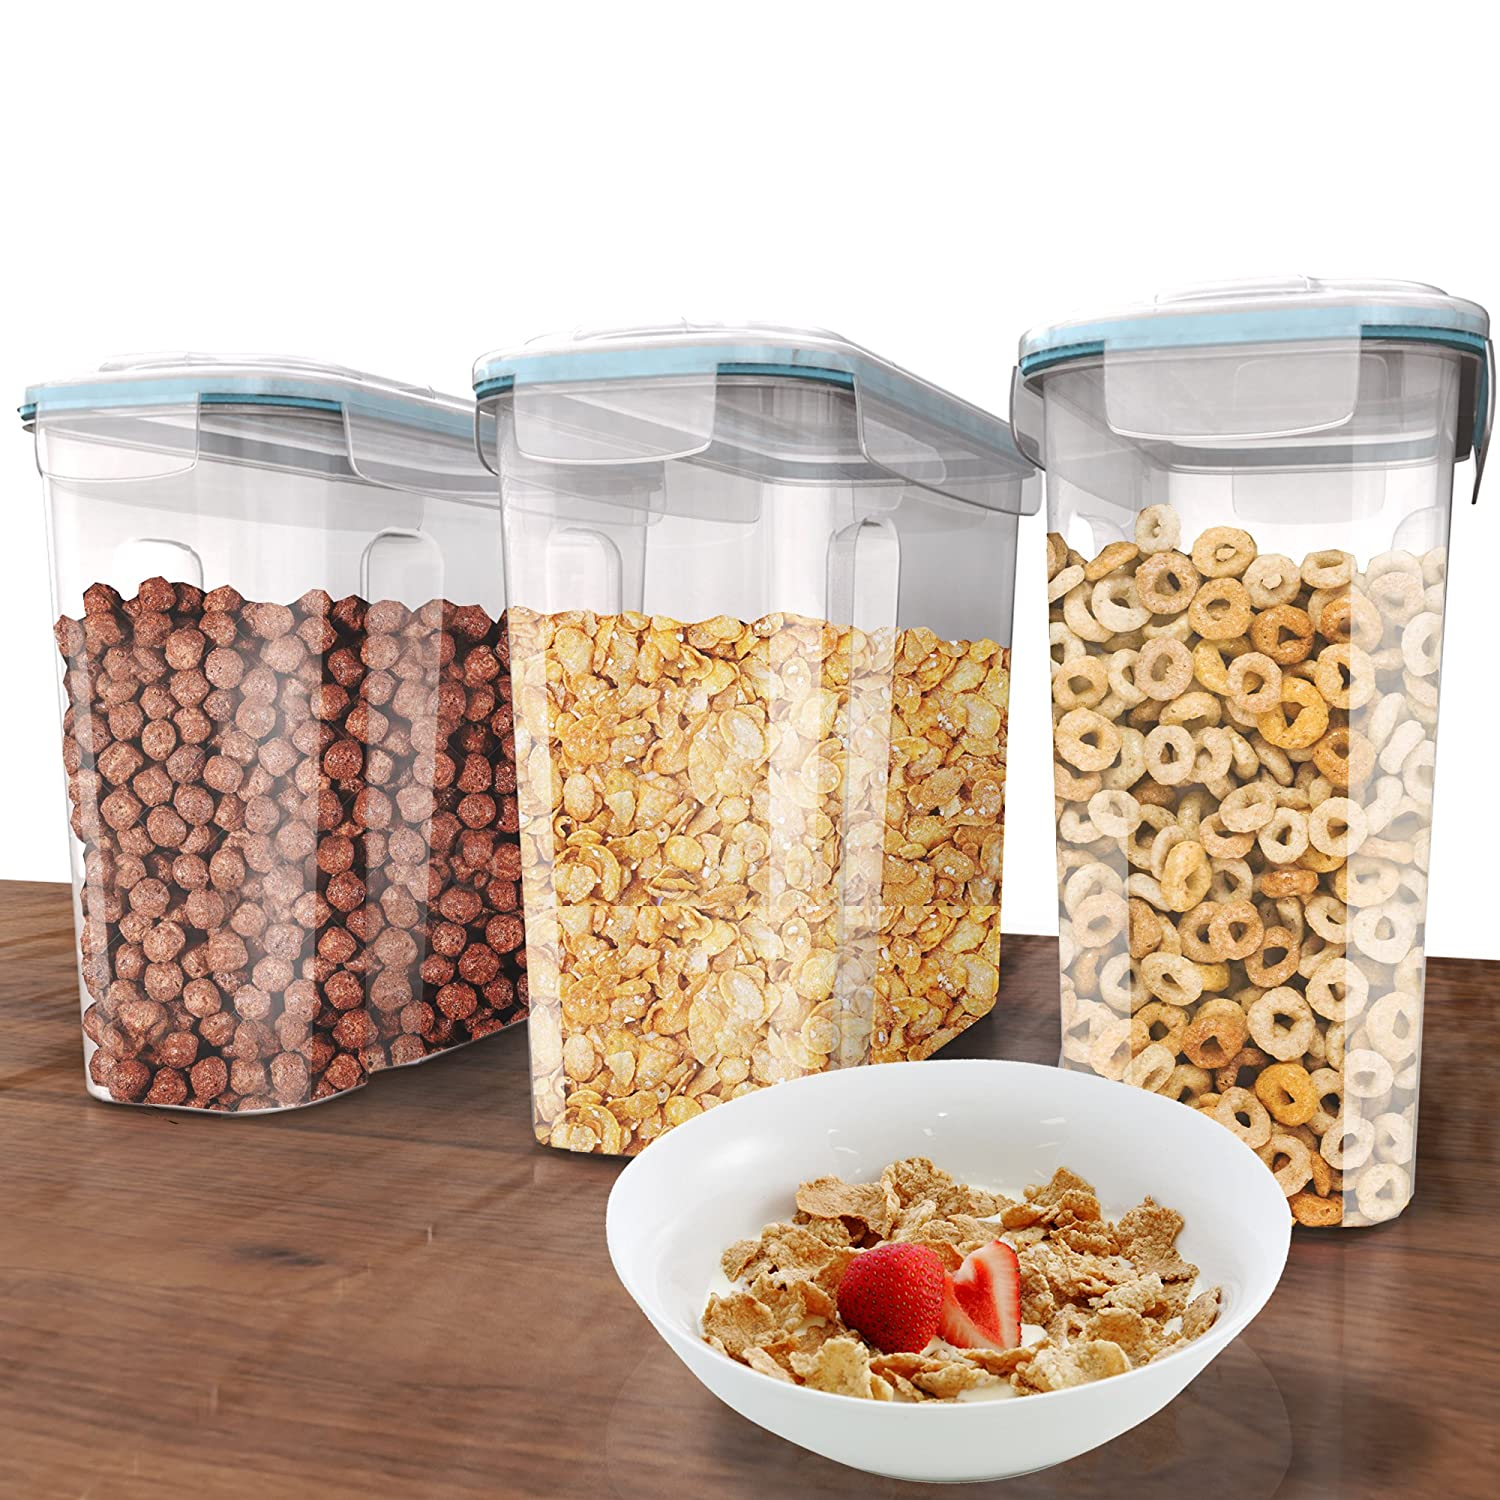 Plastic Cereal Containers 3 Pc (16.9 Cup/135.2oz) + FREE 18 Chalkboard Labels & Marker - Airtight Dry Food Keepers - Great For Cereal, Flour, Sugar & More - BPA Free Dispenser Shazo 43219-94340